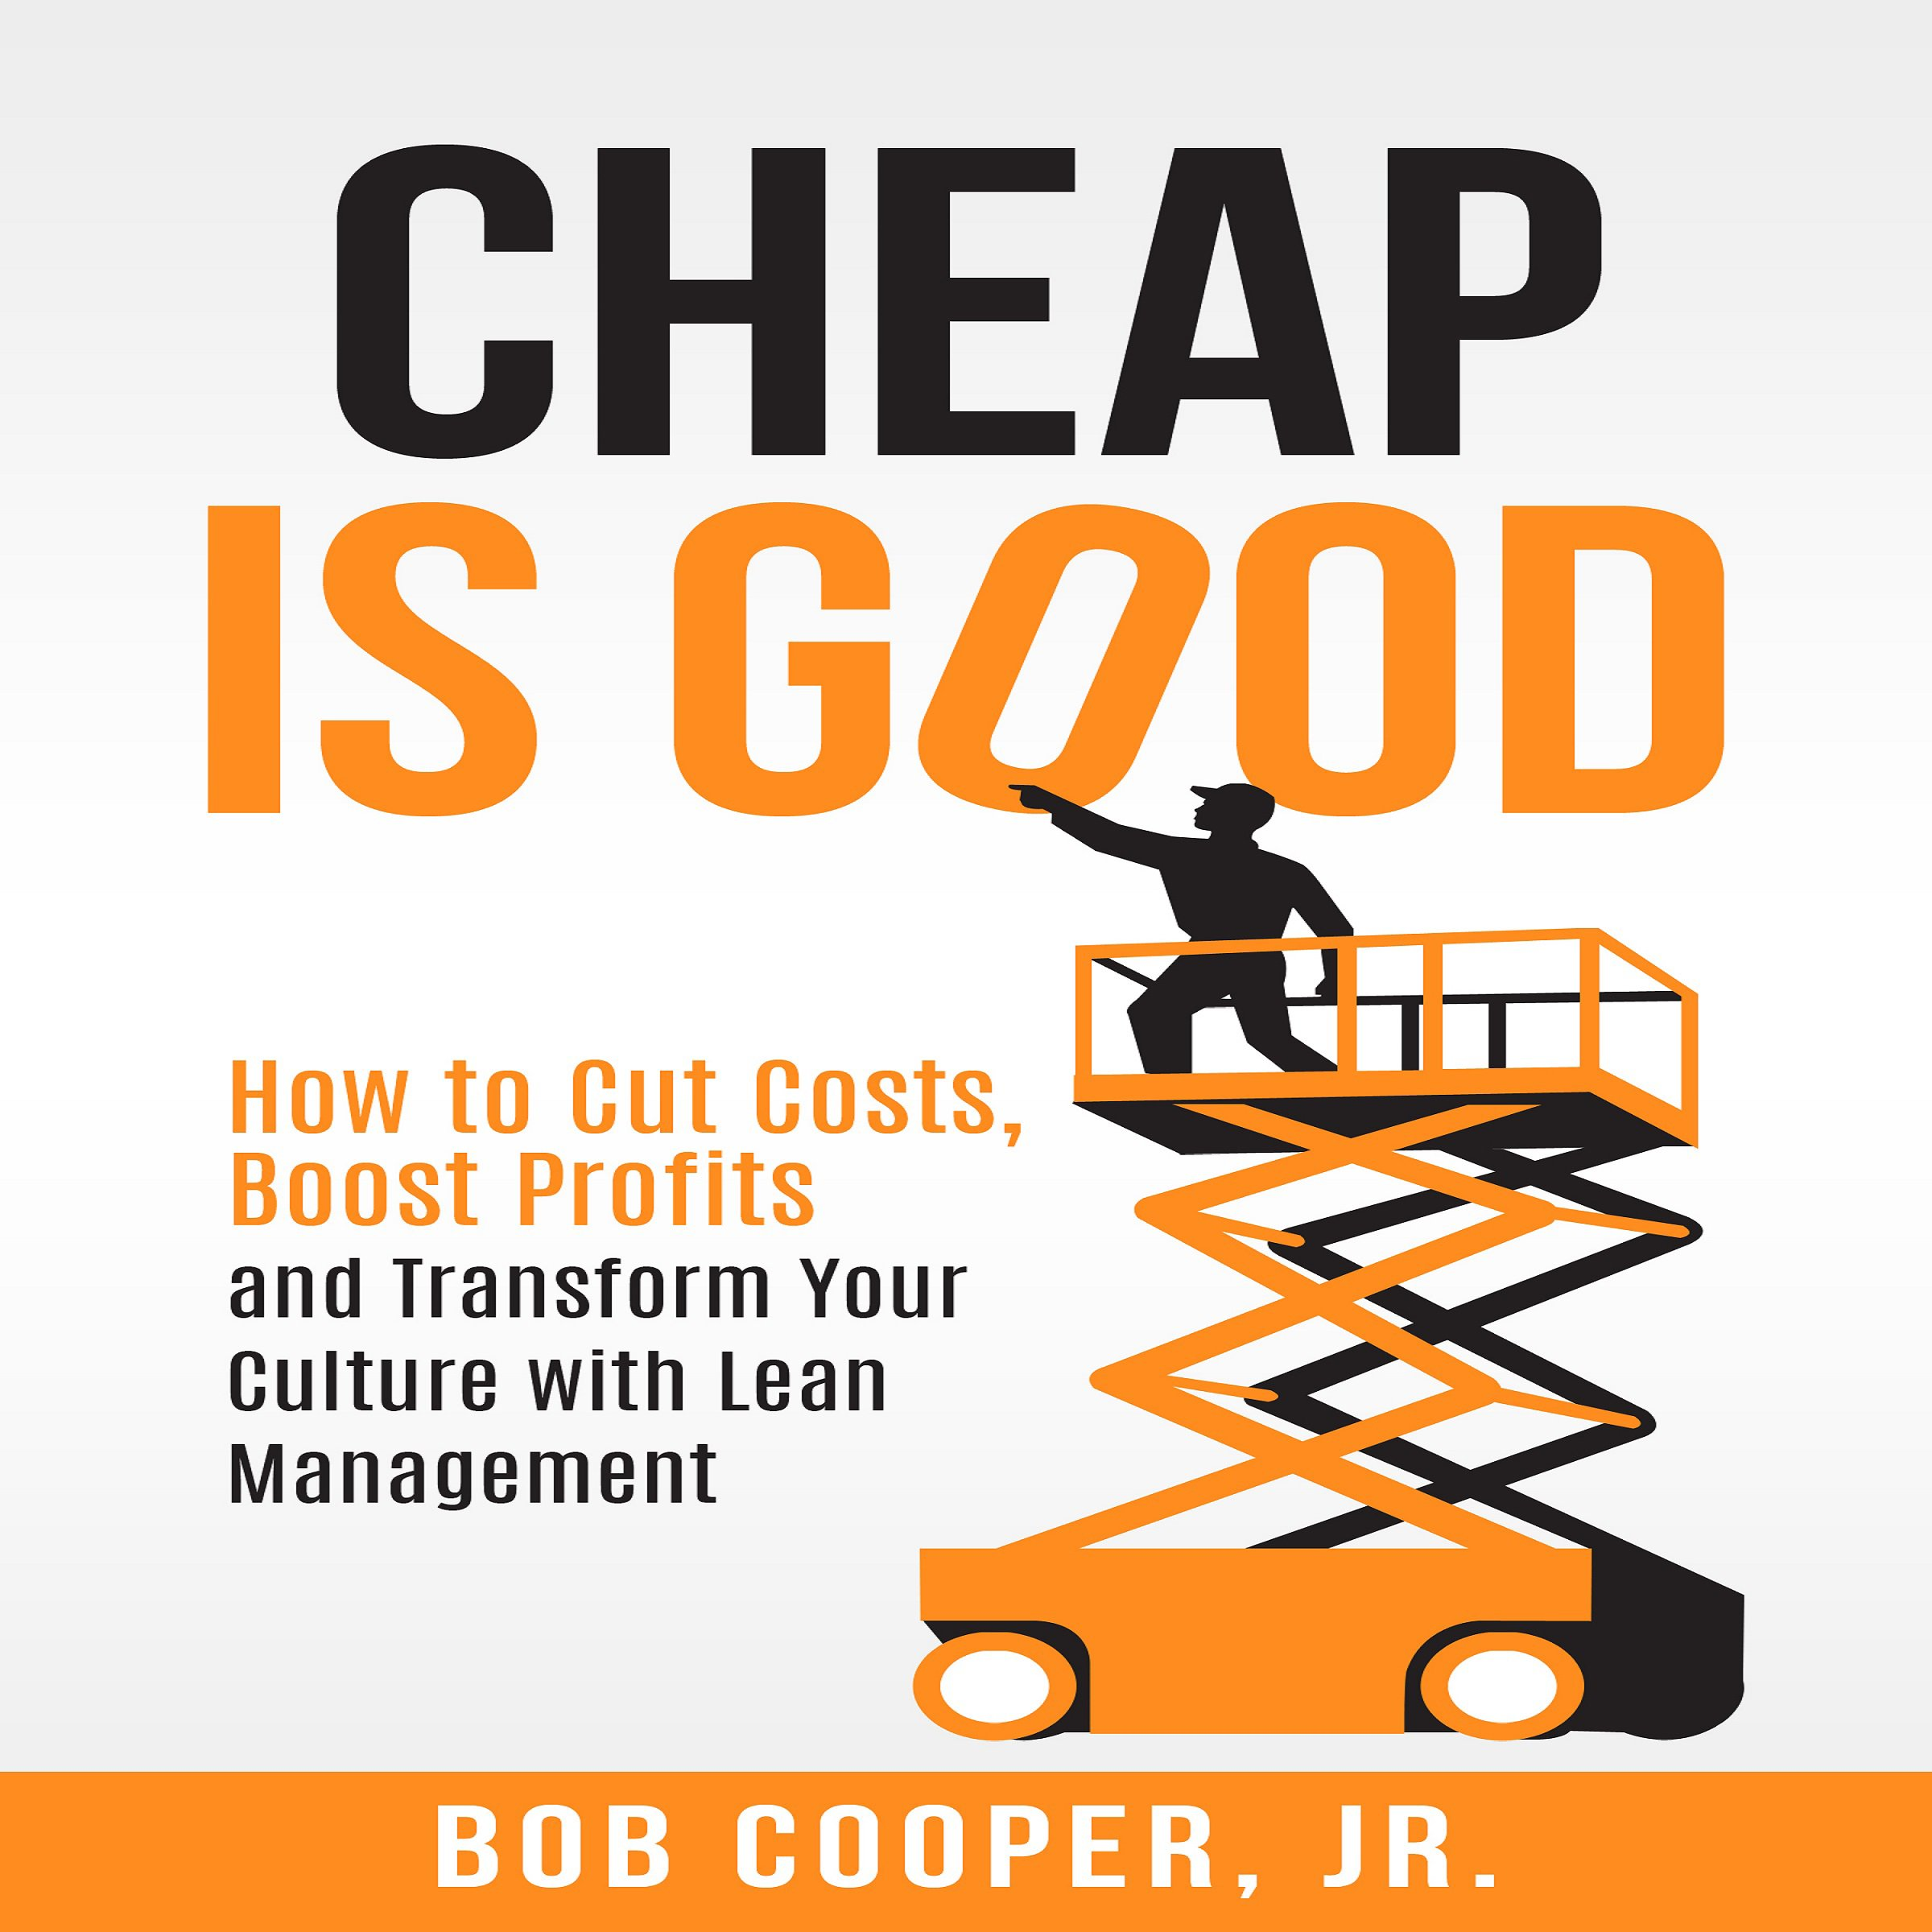 Cheap Is Good: How to Cut Costs, Boost Profits and Transform Your Culture with Lean Management